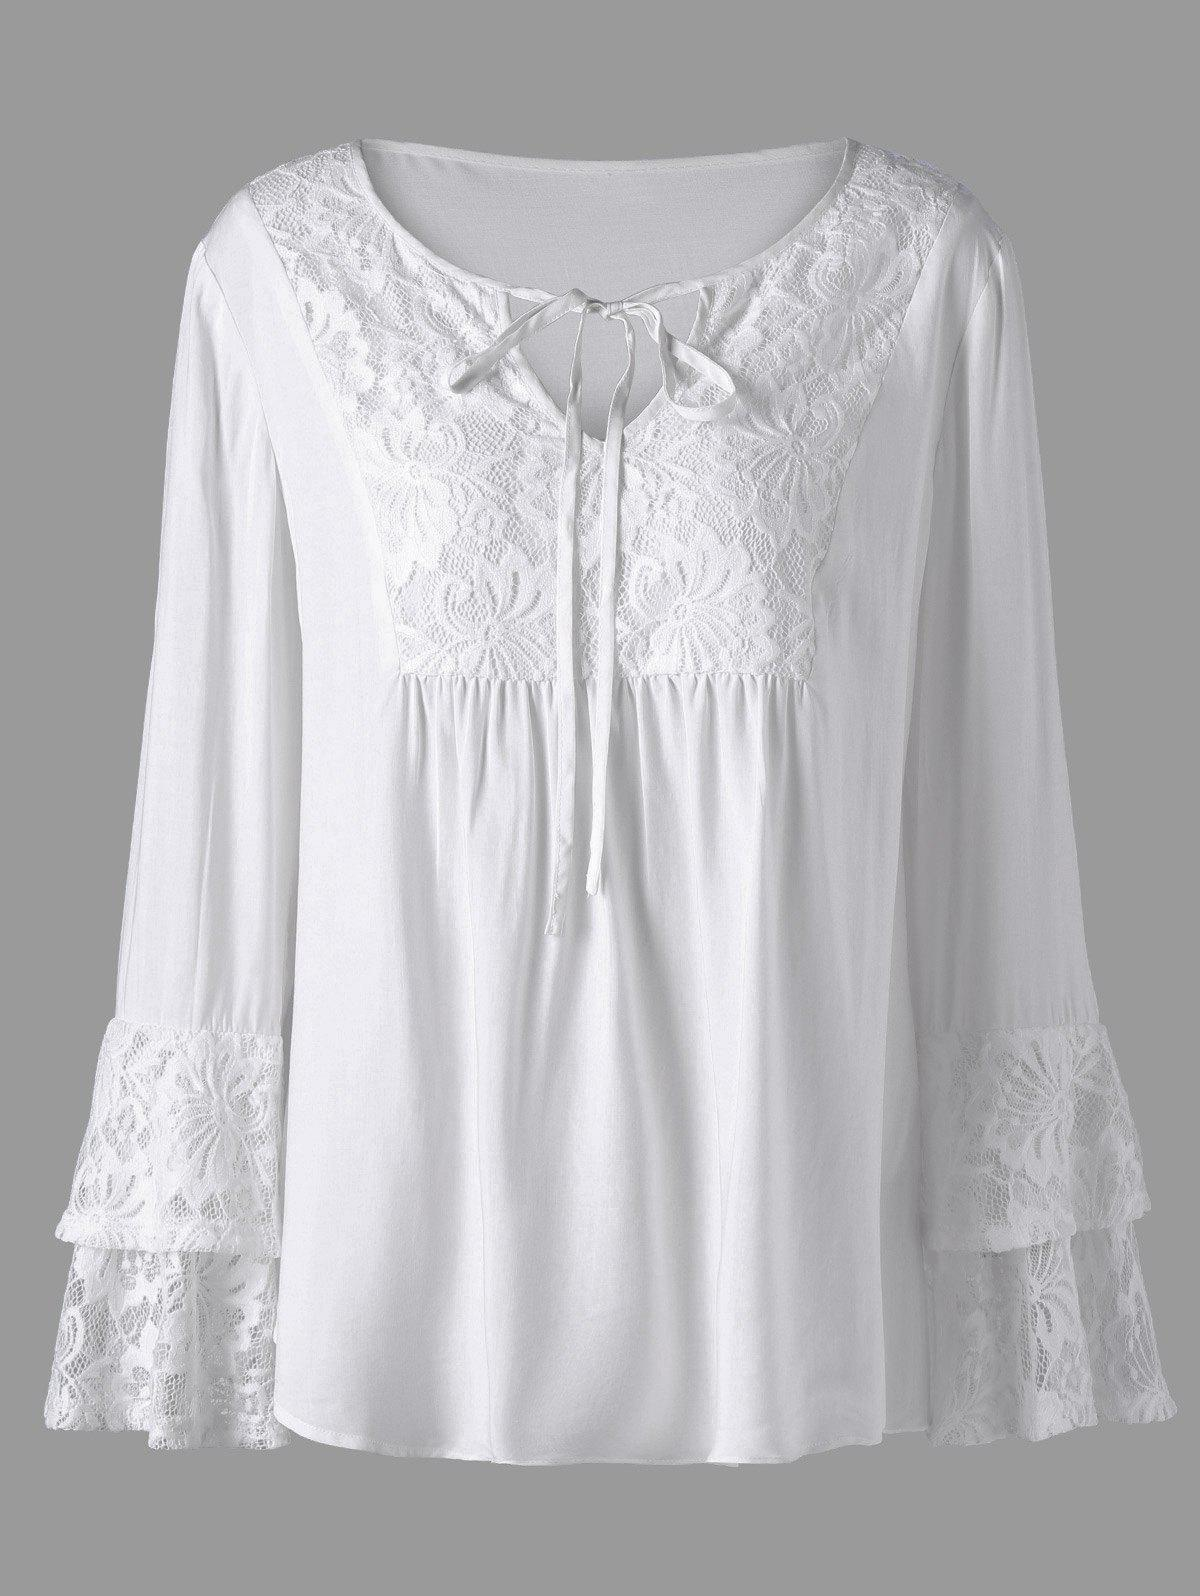 Plus Size Lace Trim Layered Sleeve Blouse велосипед giant propel advanced 2 2016